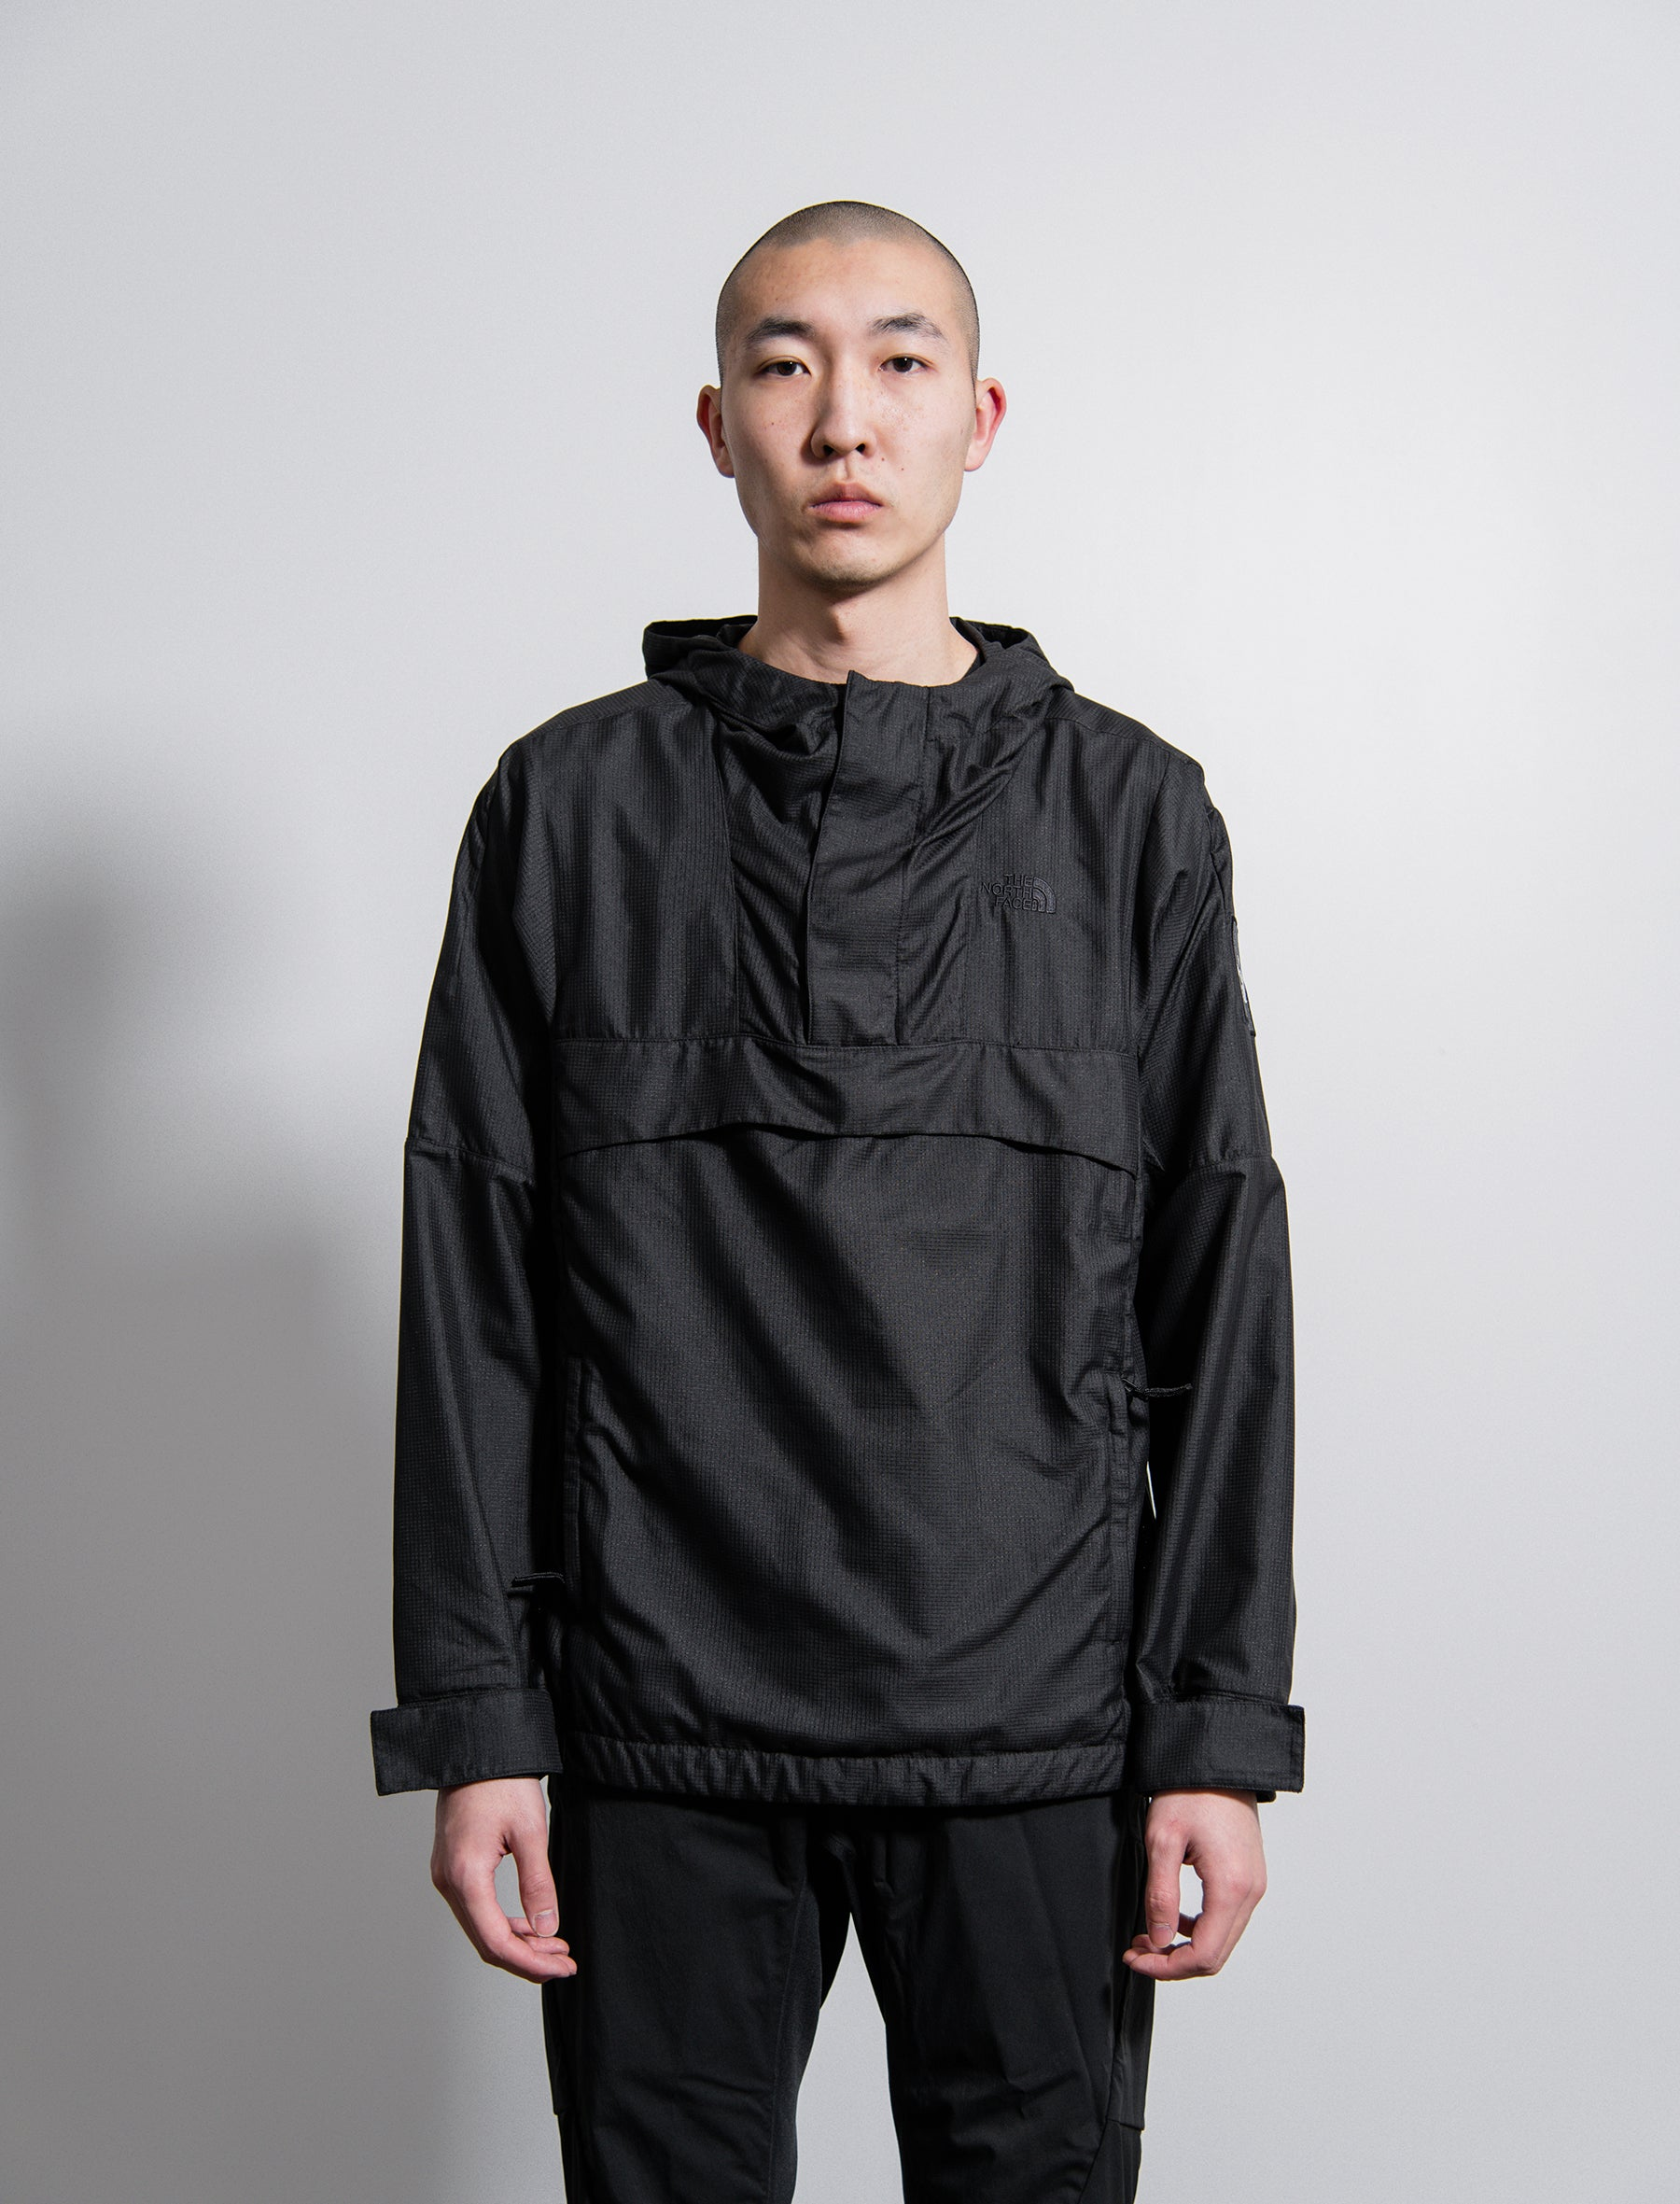 a4d0c8dab Wind Jammer Dot Air Pullover Jacket Black